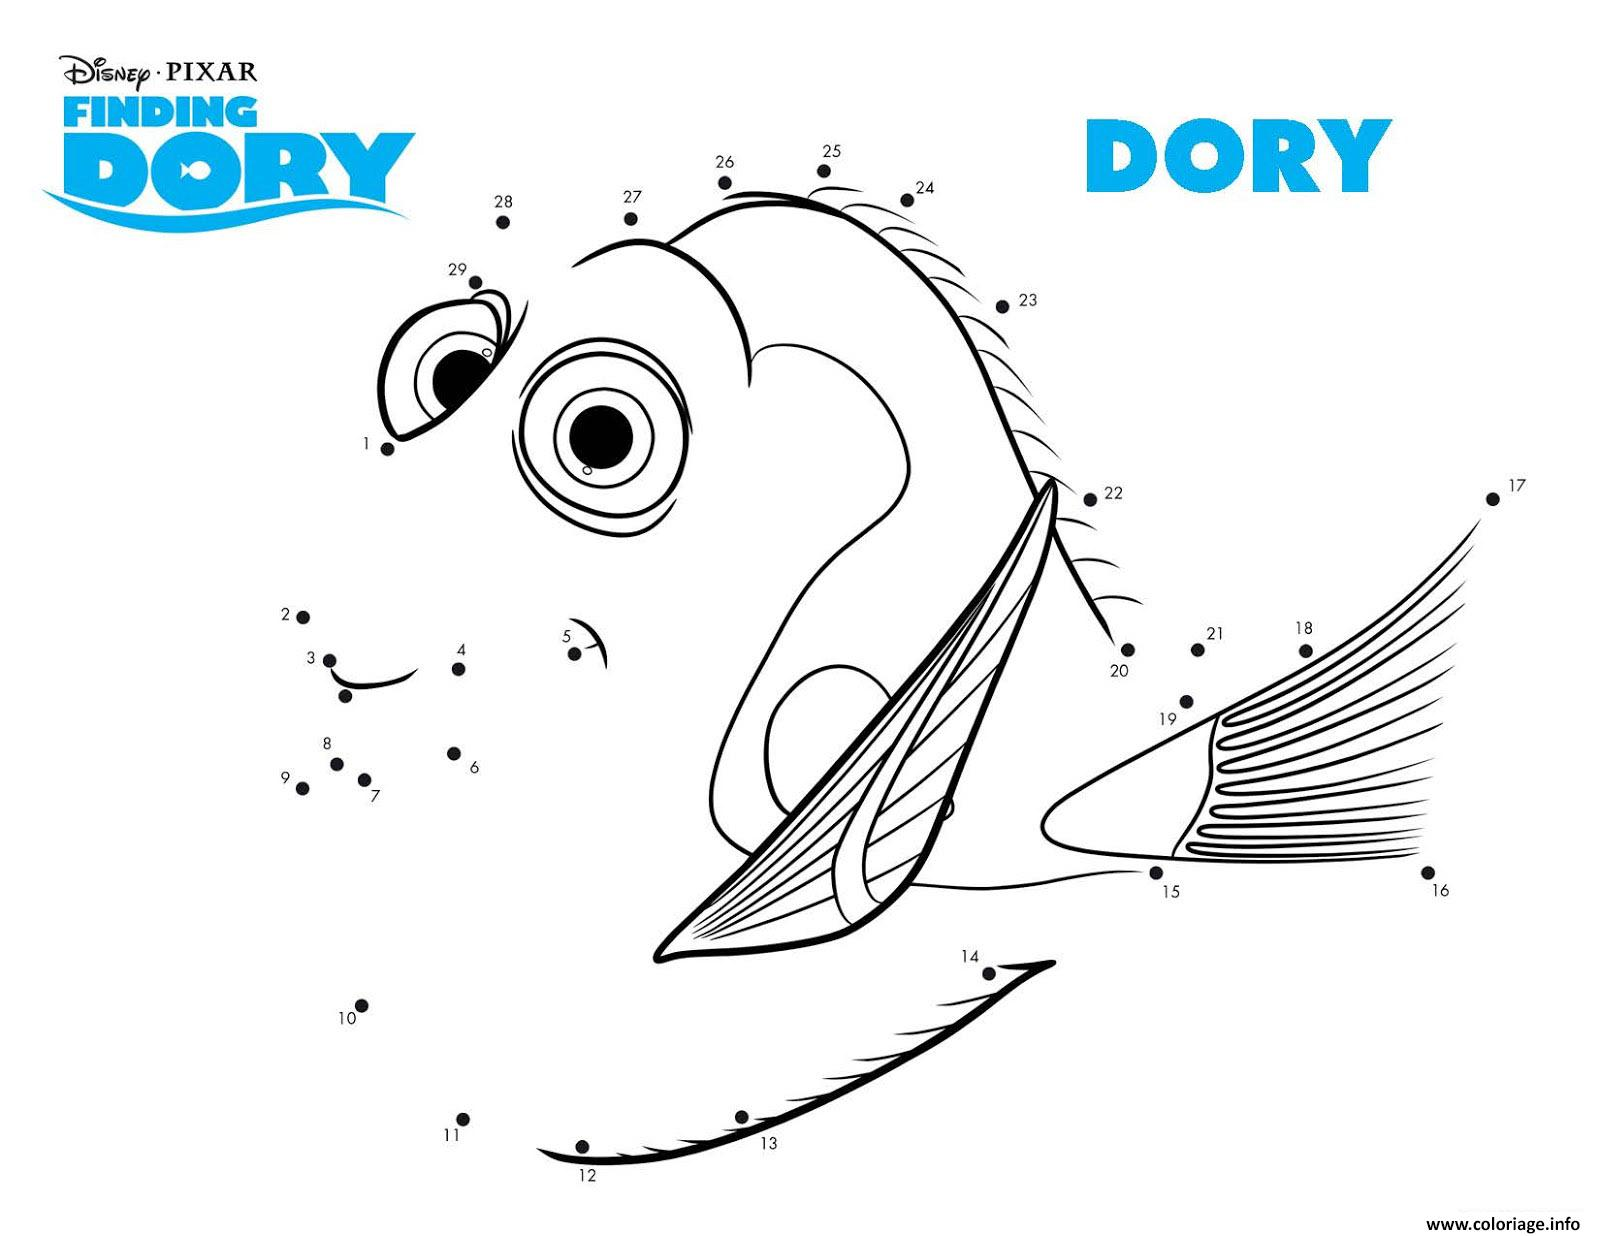 Coloriage le monde de dory point a relier 2 - Point a relier gratuit ...